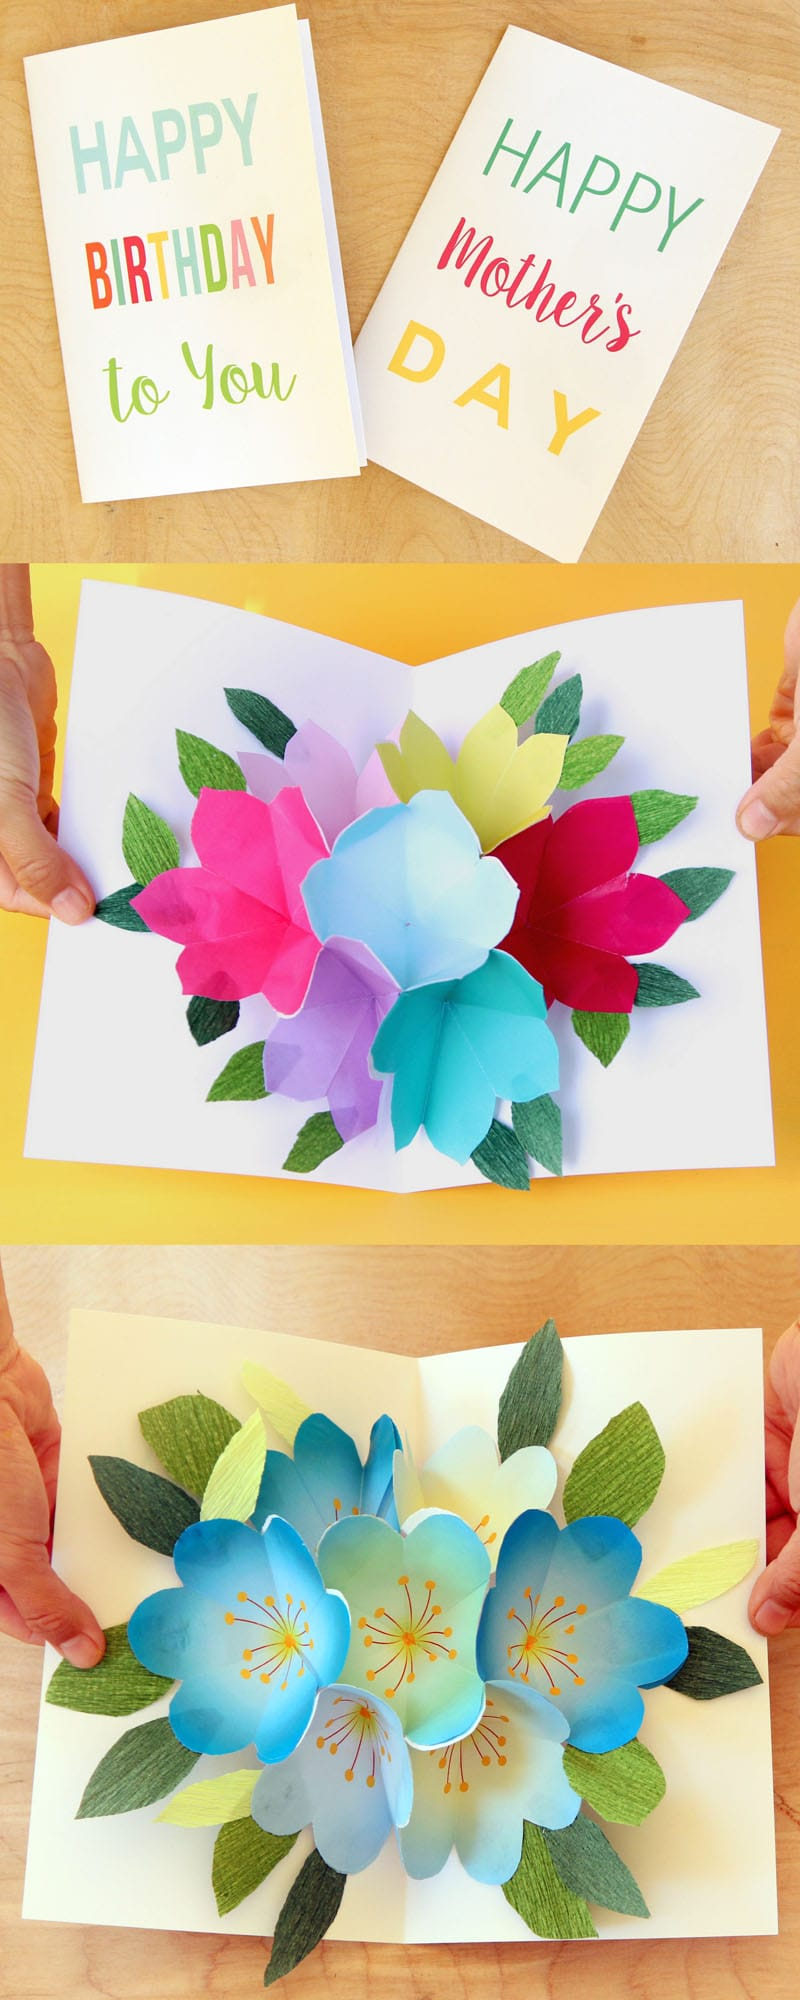 Free printable happy birthday card with pop up bouquet a piece you can make this easy and free printable birthday card in less than an hour oh and the best part a big bouquet pops right out when your loved one opens kristyandbryce Images